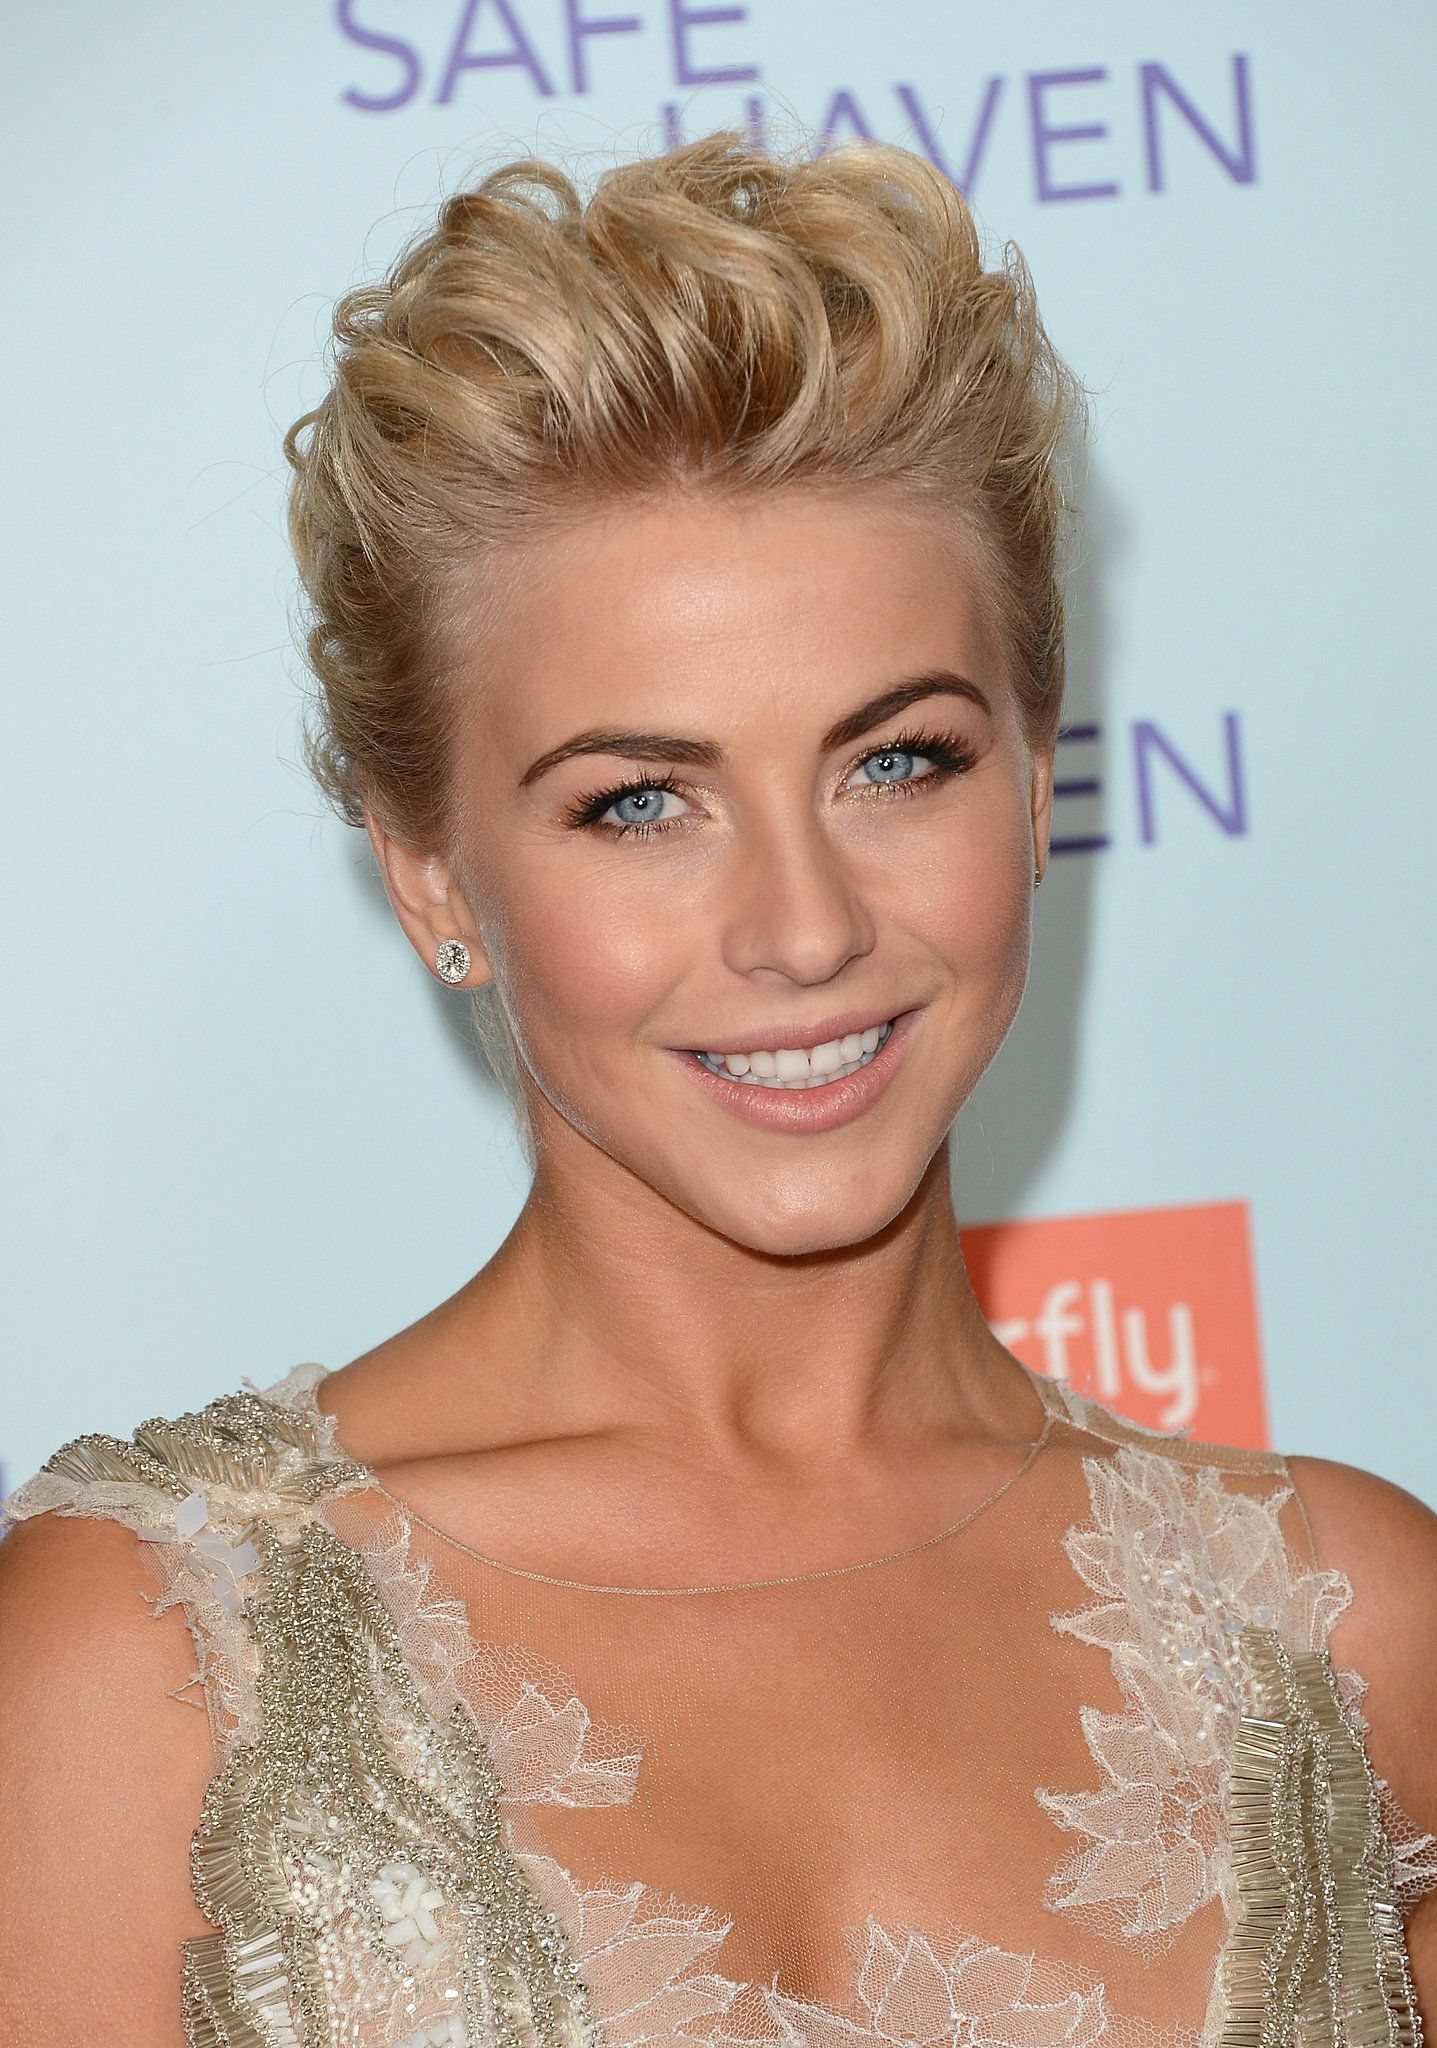 For The Big La Premiere Of Safe Haven Julianne Wore Her Crop In A Celebrate Julianne Hough S Birthday With A Look At Her Best Bob Styles Popsugar Beauty Ph